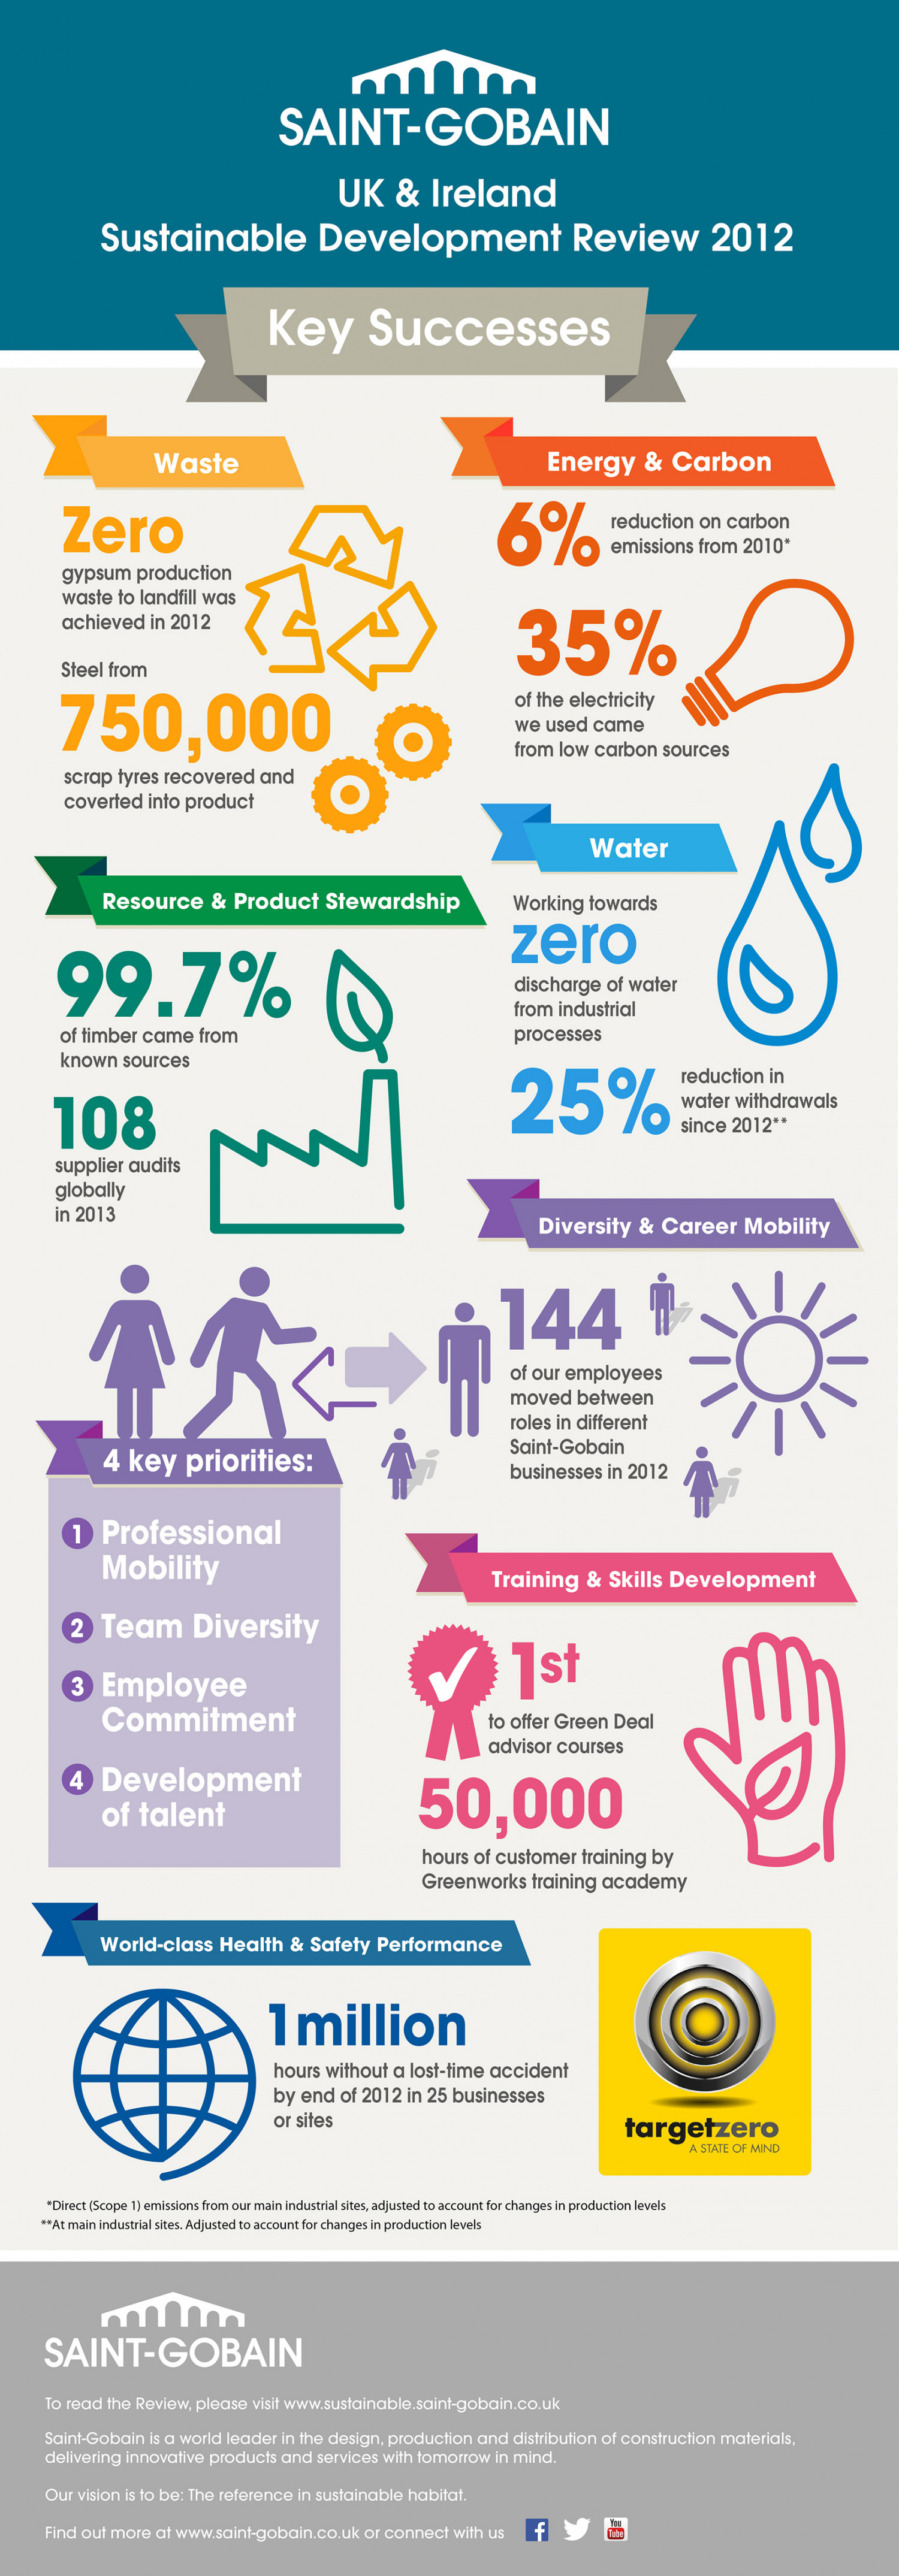 Sustainable Development Review Infographic